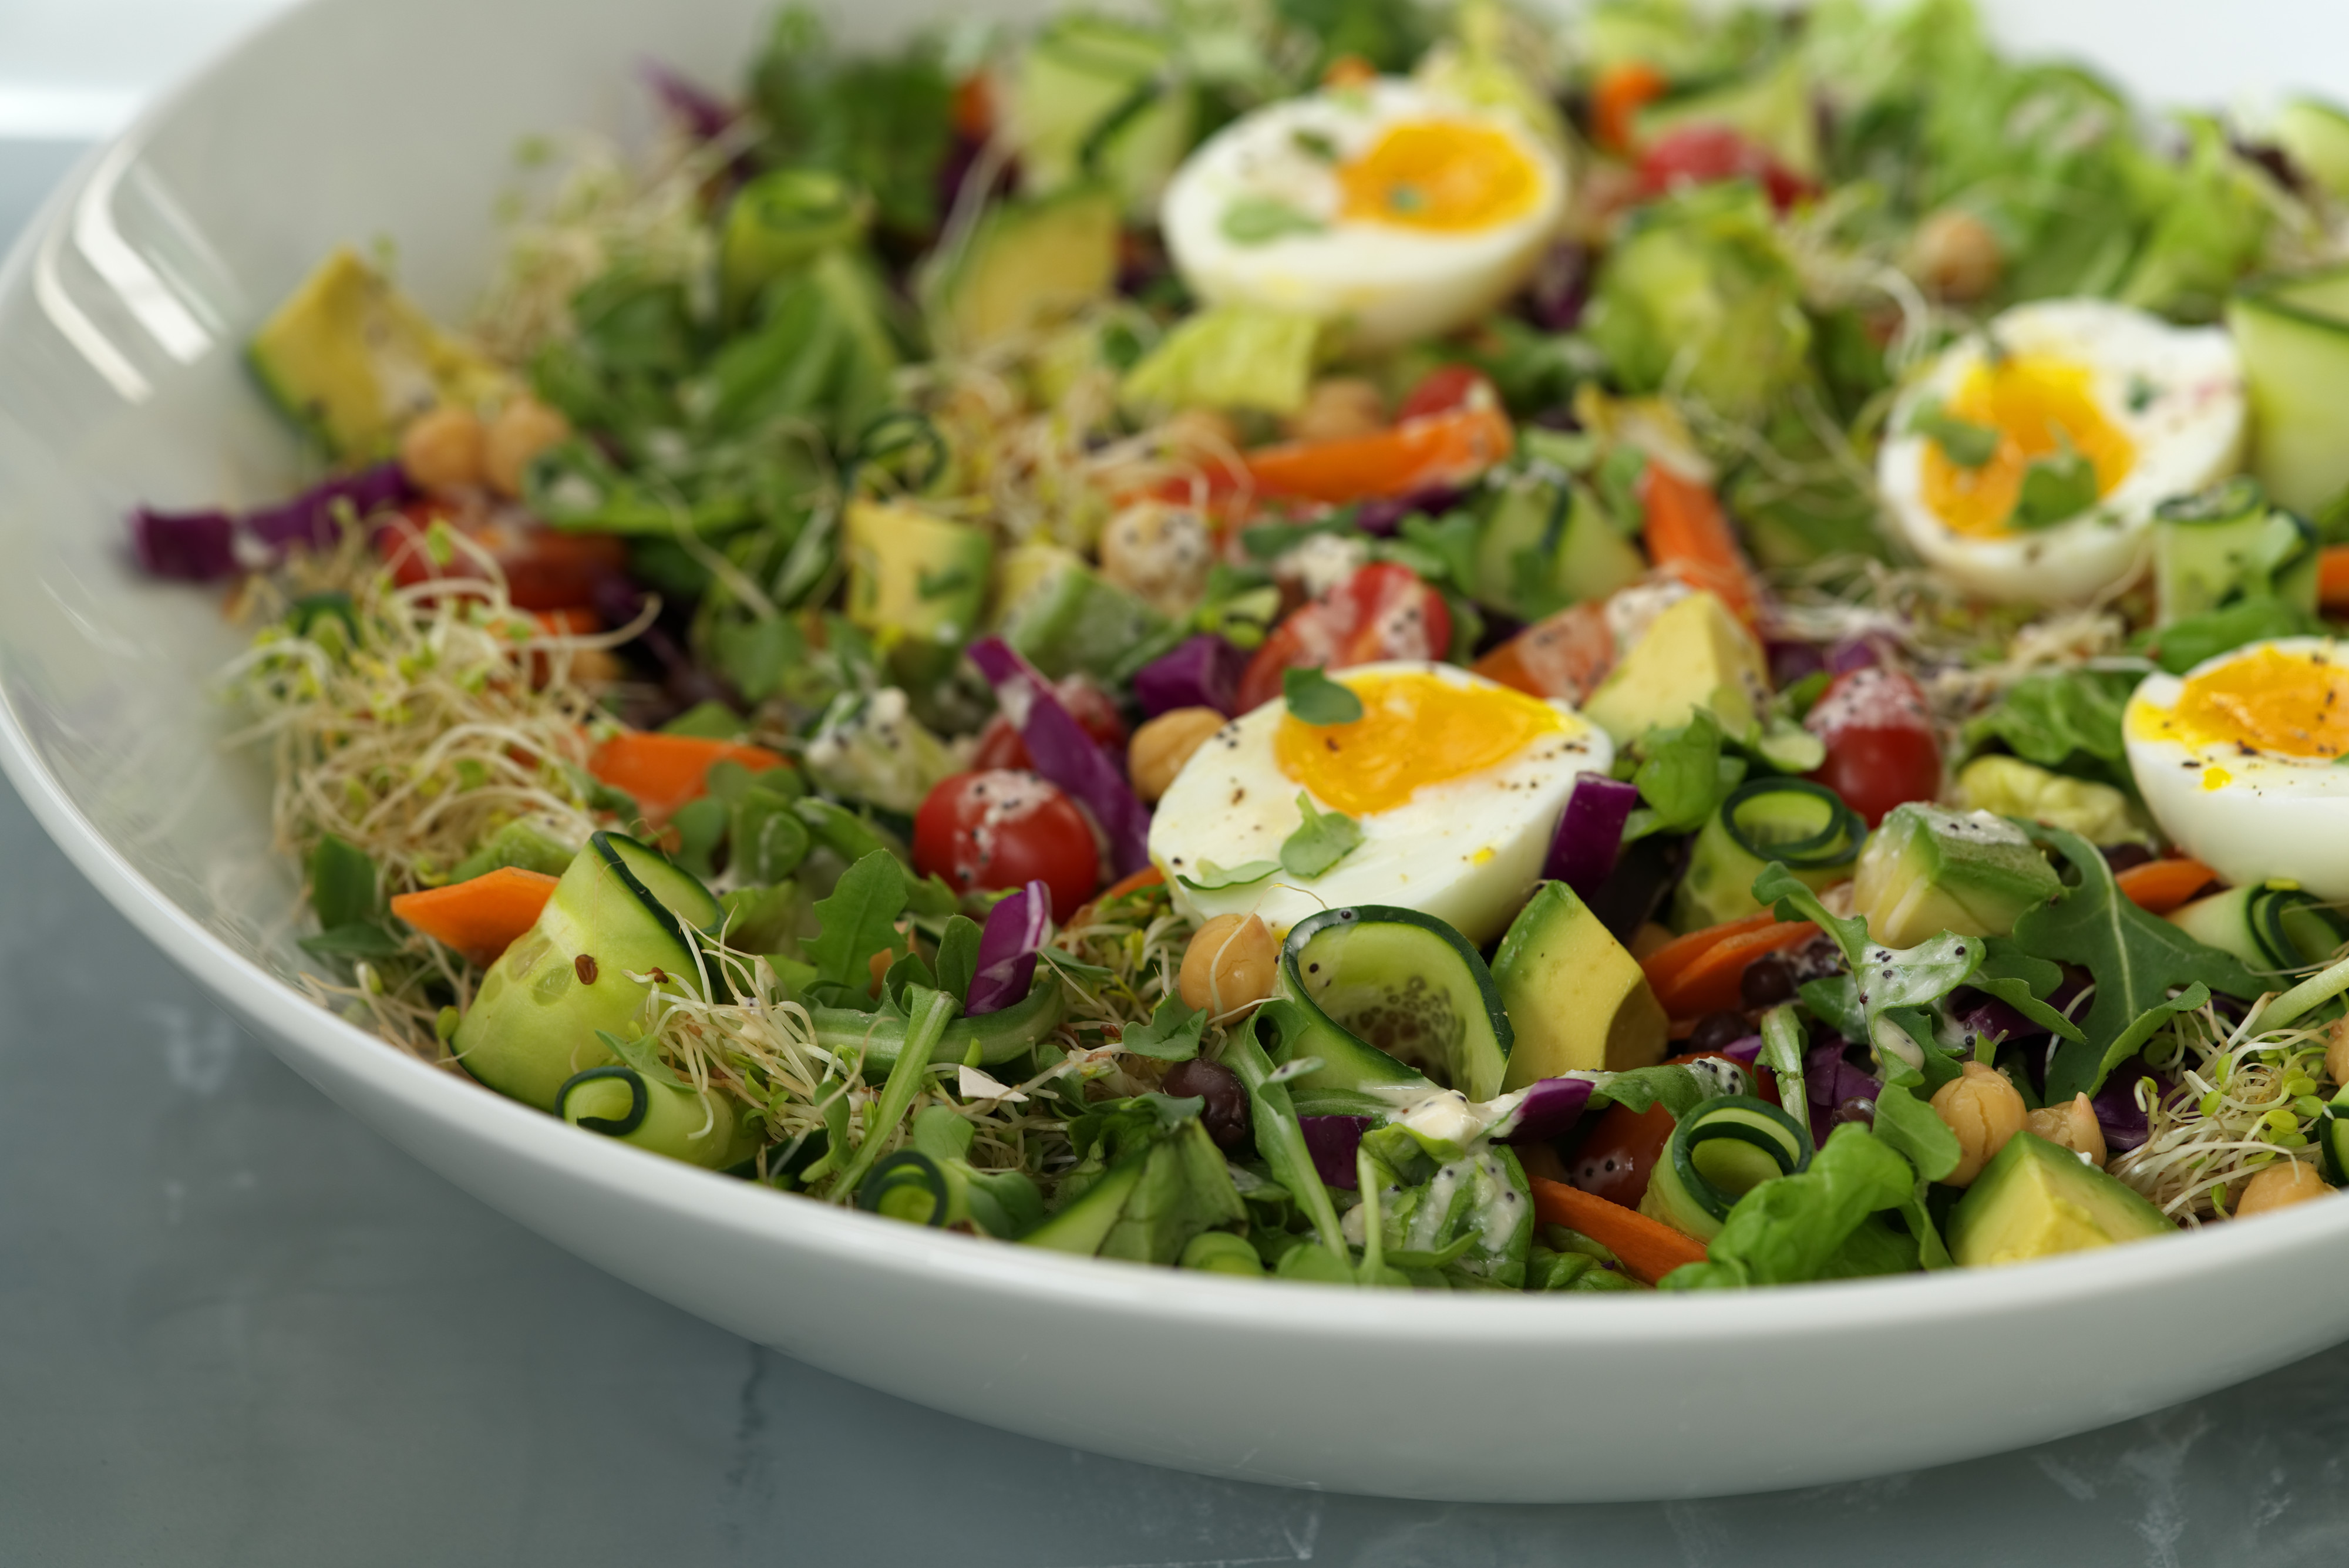 Hearty Tossed Green Salad with Poppy Seed Dressing